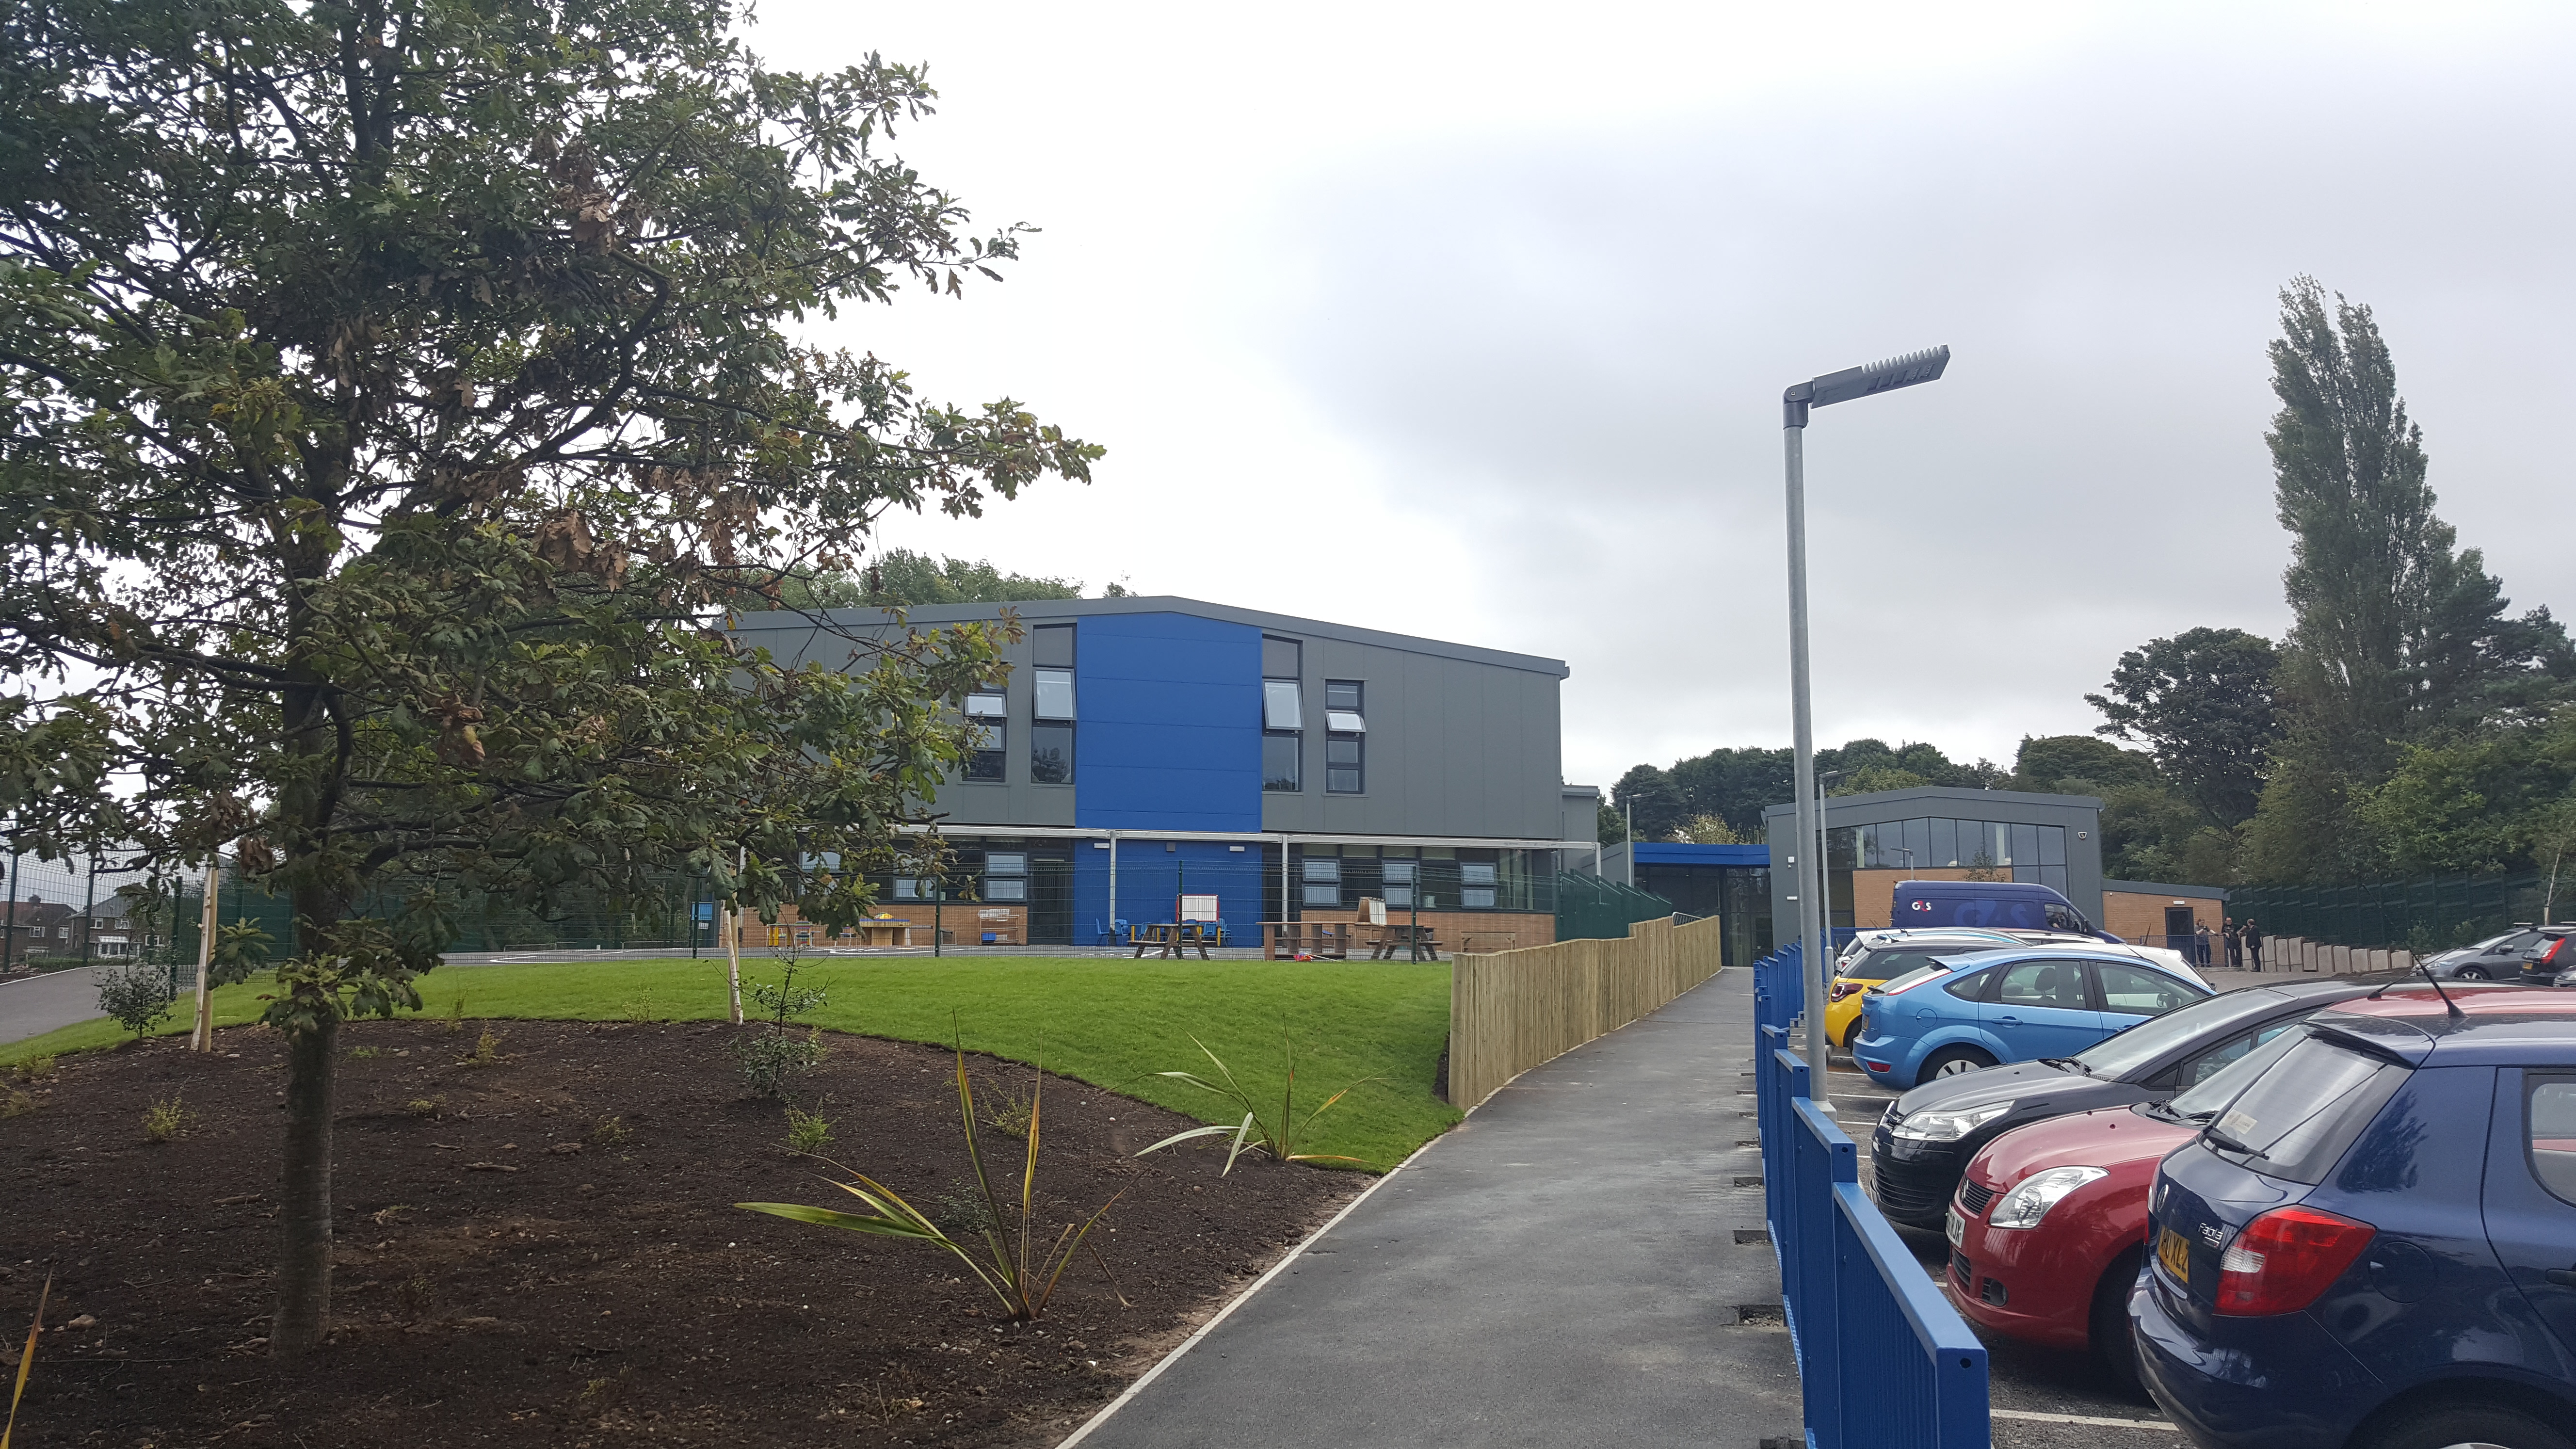 Our beautiful new school